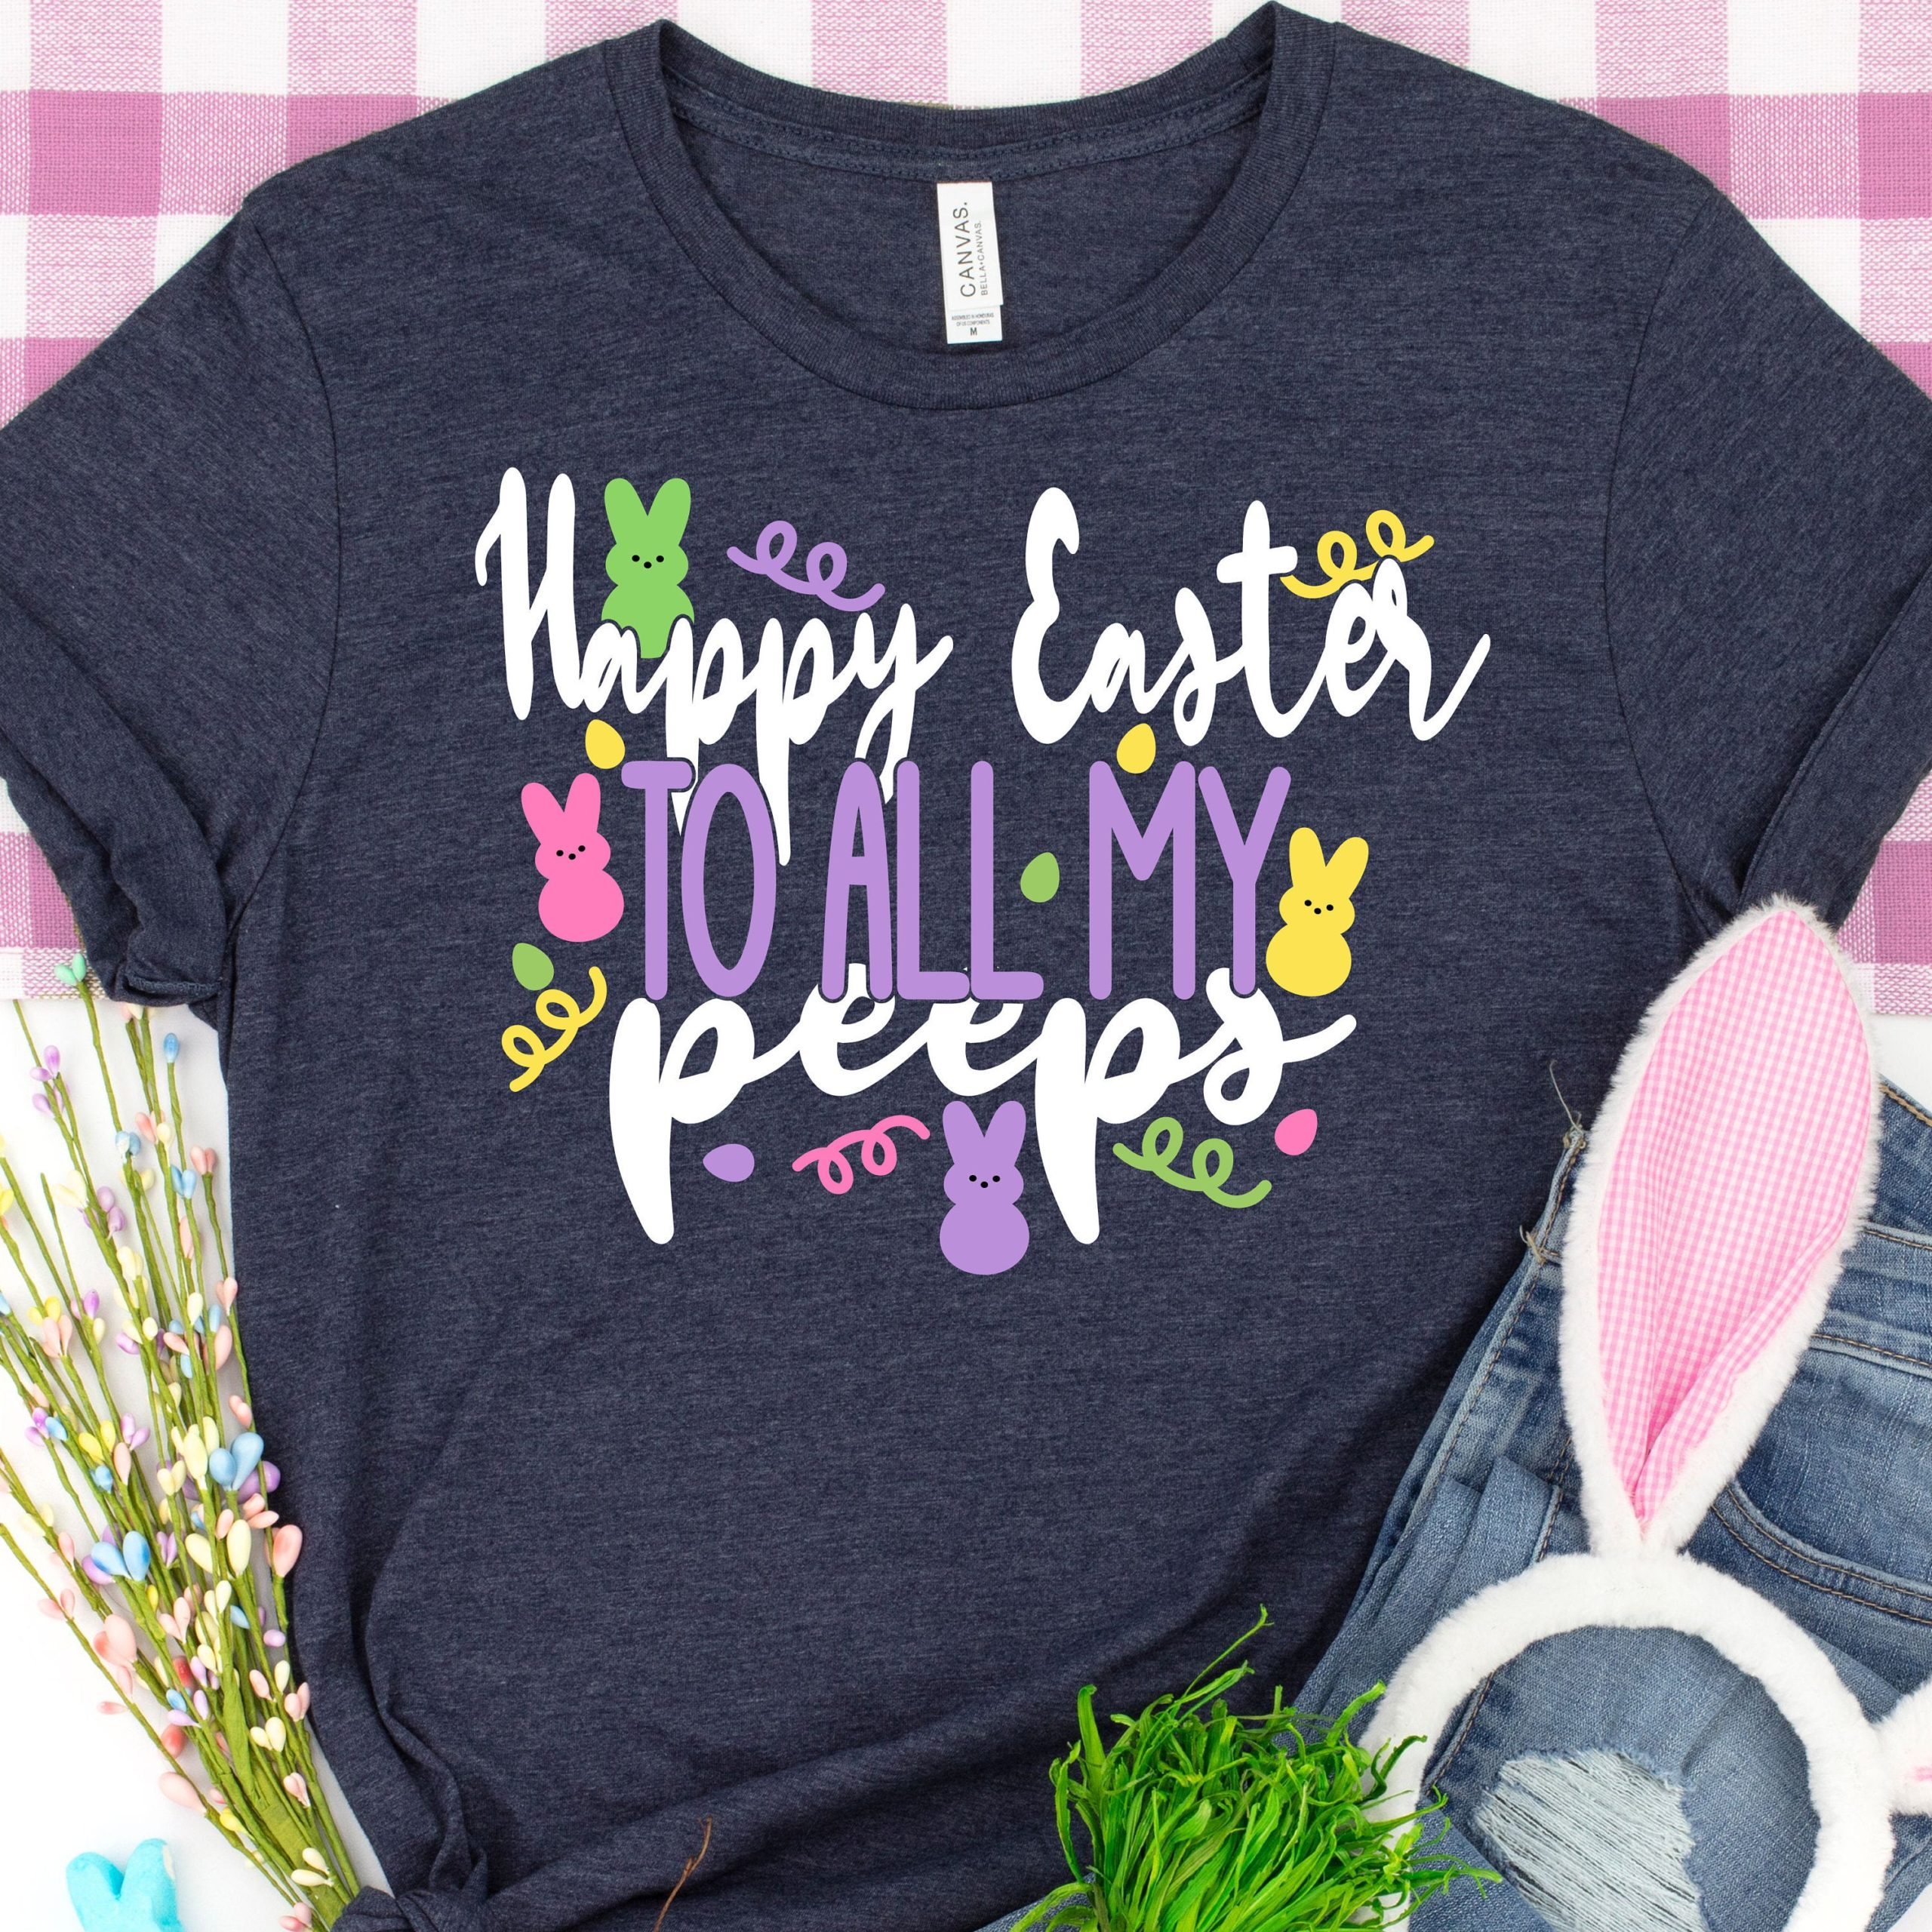 Easter-svg-happy-easter-to-all-my-peeps-svg-bunny-svg-easter-bunny-svg-jesus-svg-easter-svg-design-easter-cut-file-easter-cricut-svg-60513bd4